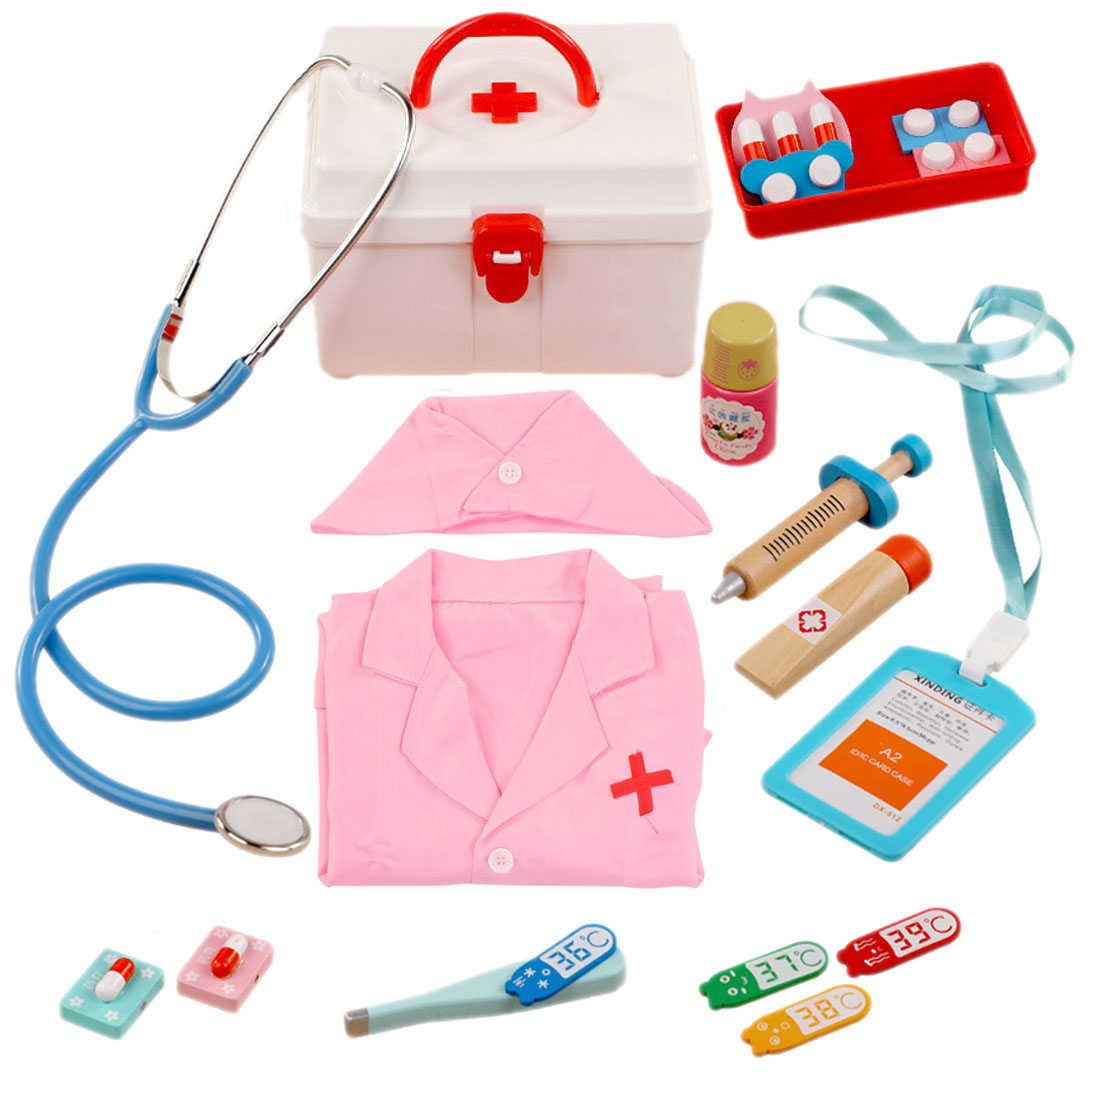 14Pcs Children Pretend Play Medical Kit Role Play Nurse Playset With Nurse Uniform Pretend Play Medical Clothing Toy For Kids